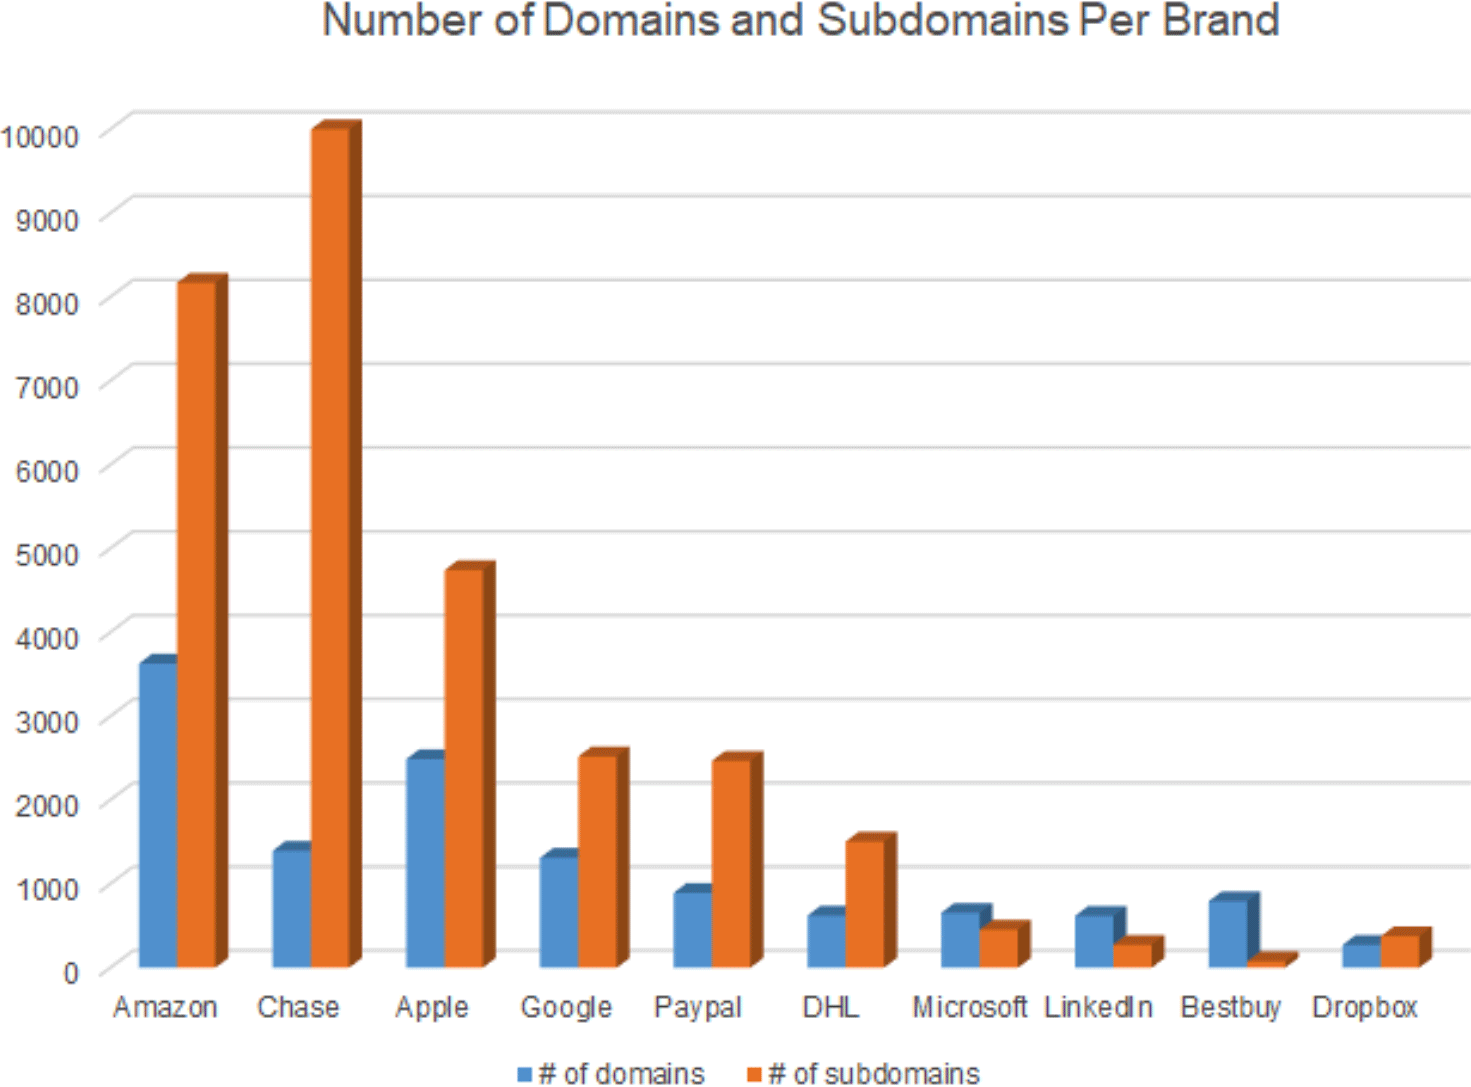 Q2 2021 Top 10 Most Impersonated Brands in Domains 7